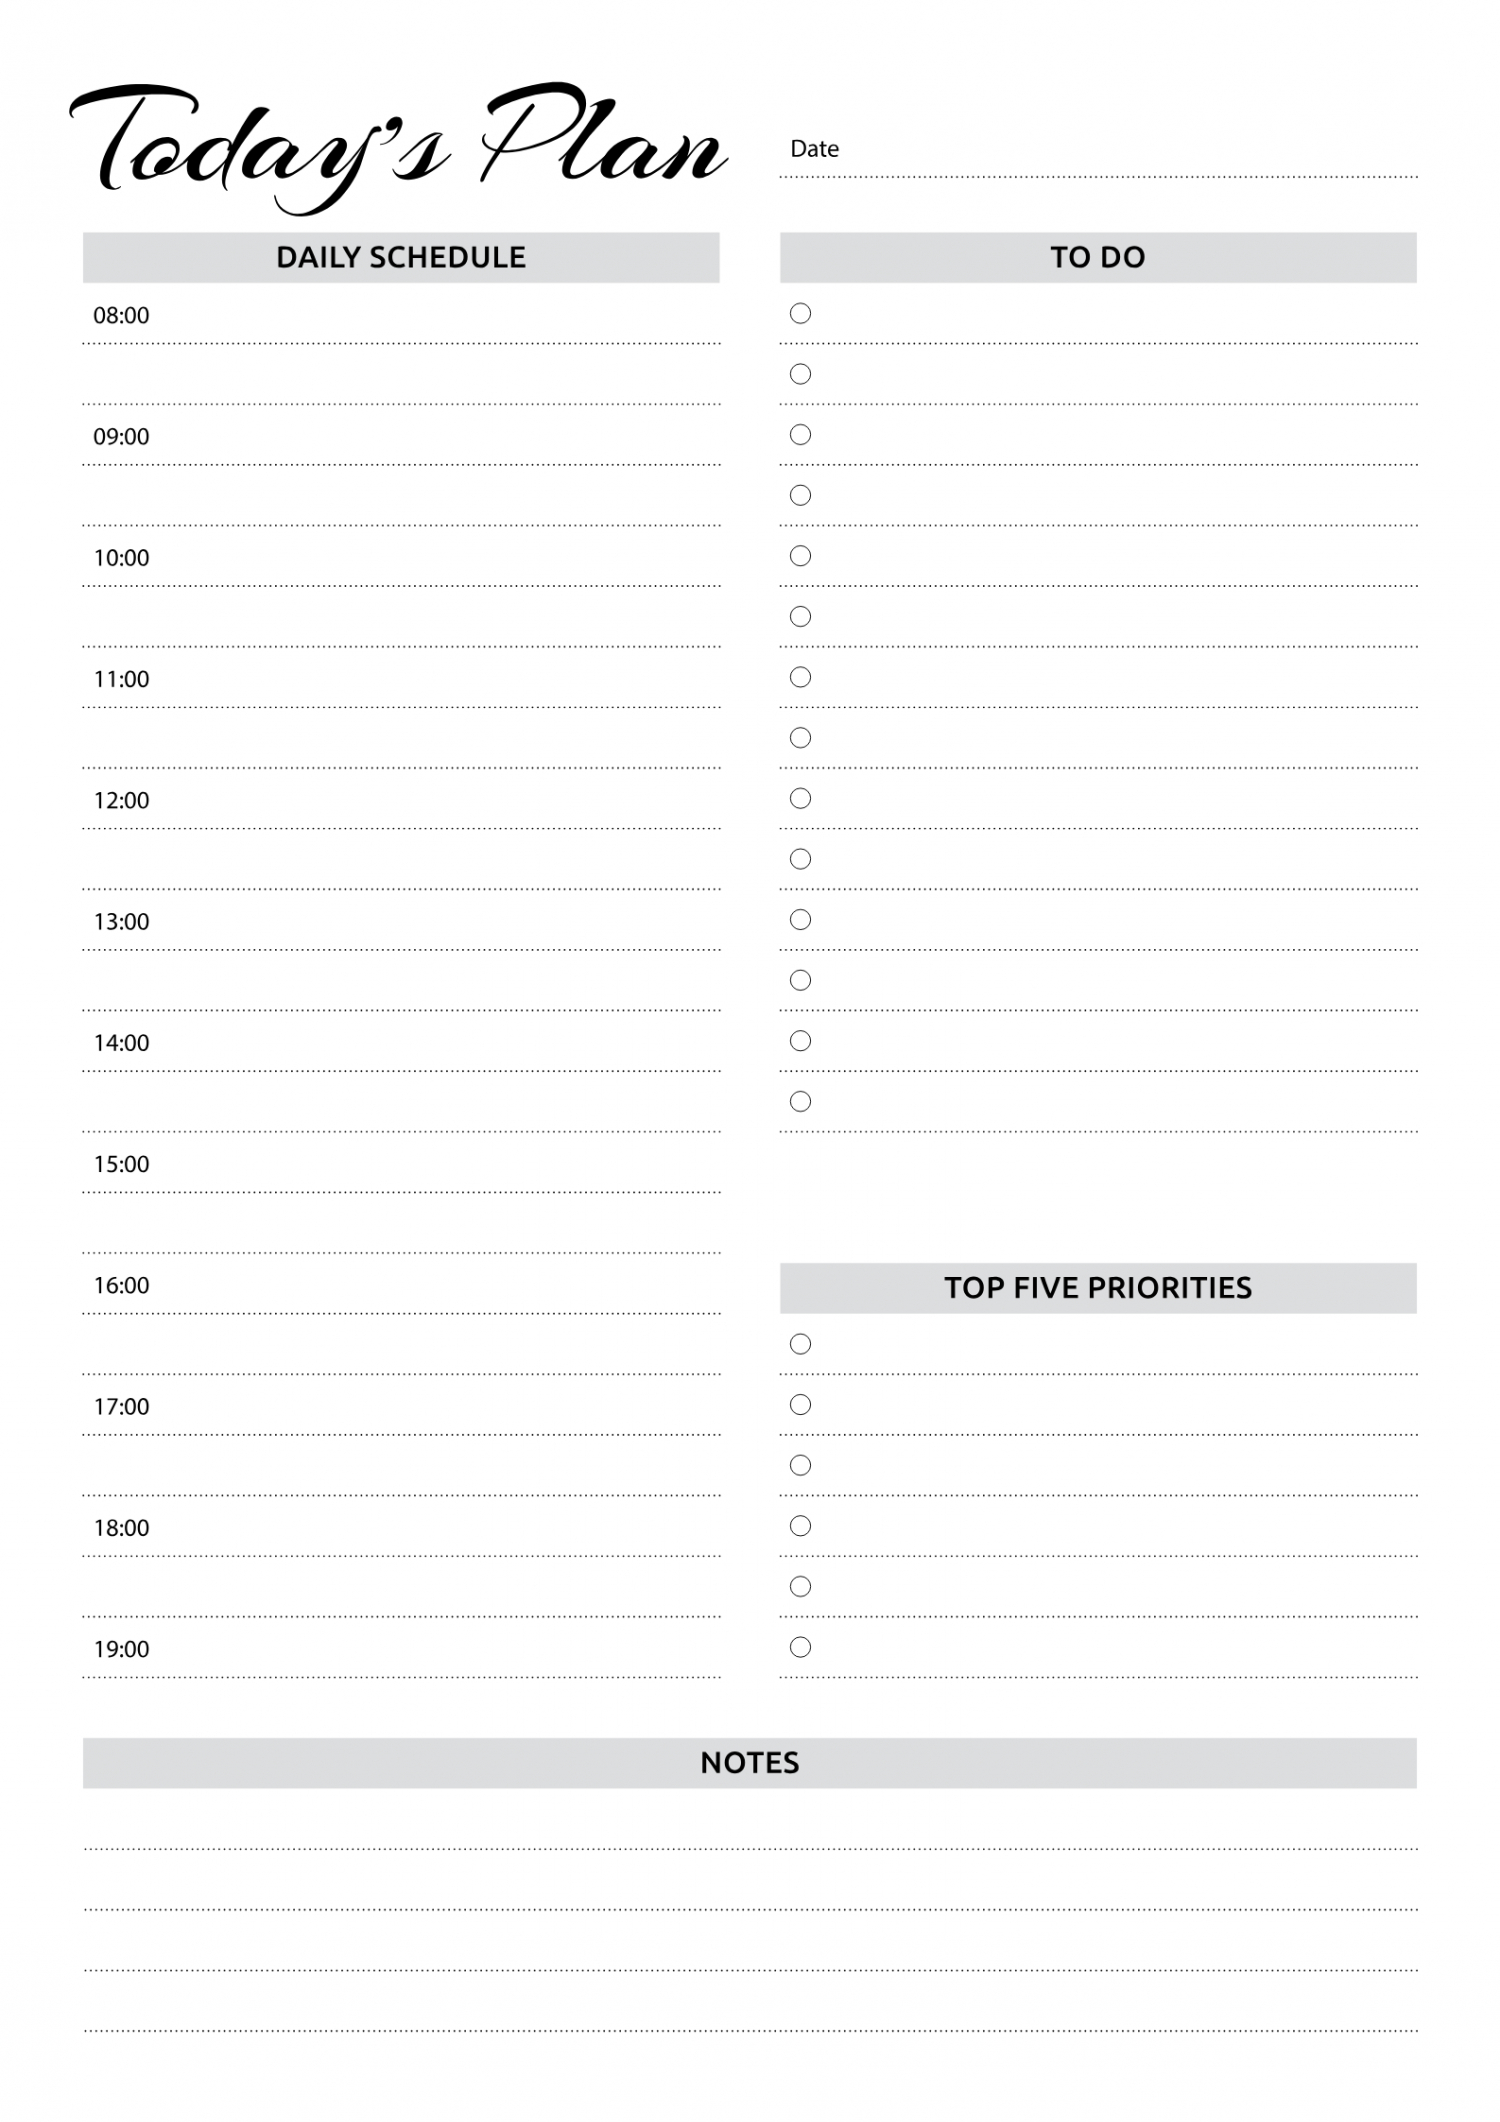 Free Printable Daily Planner With Hourly Schedule & To Do Daily Calendar By Hour